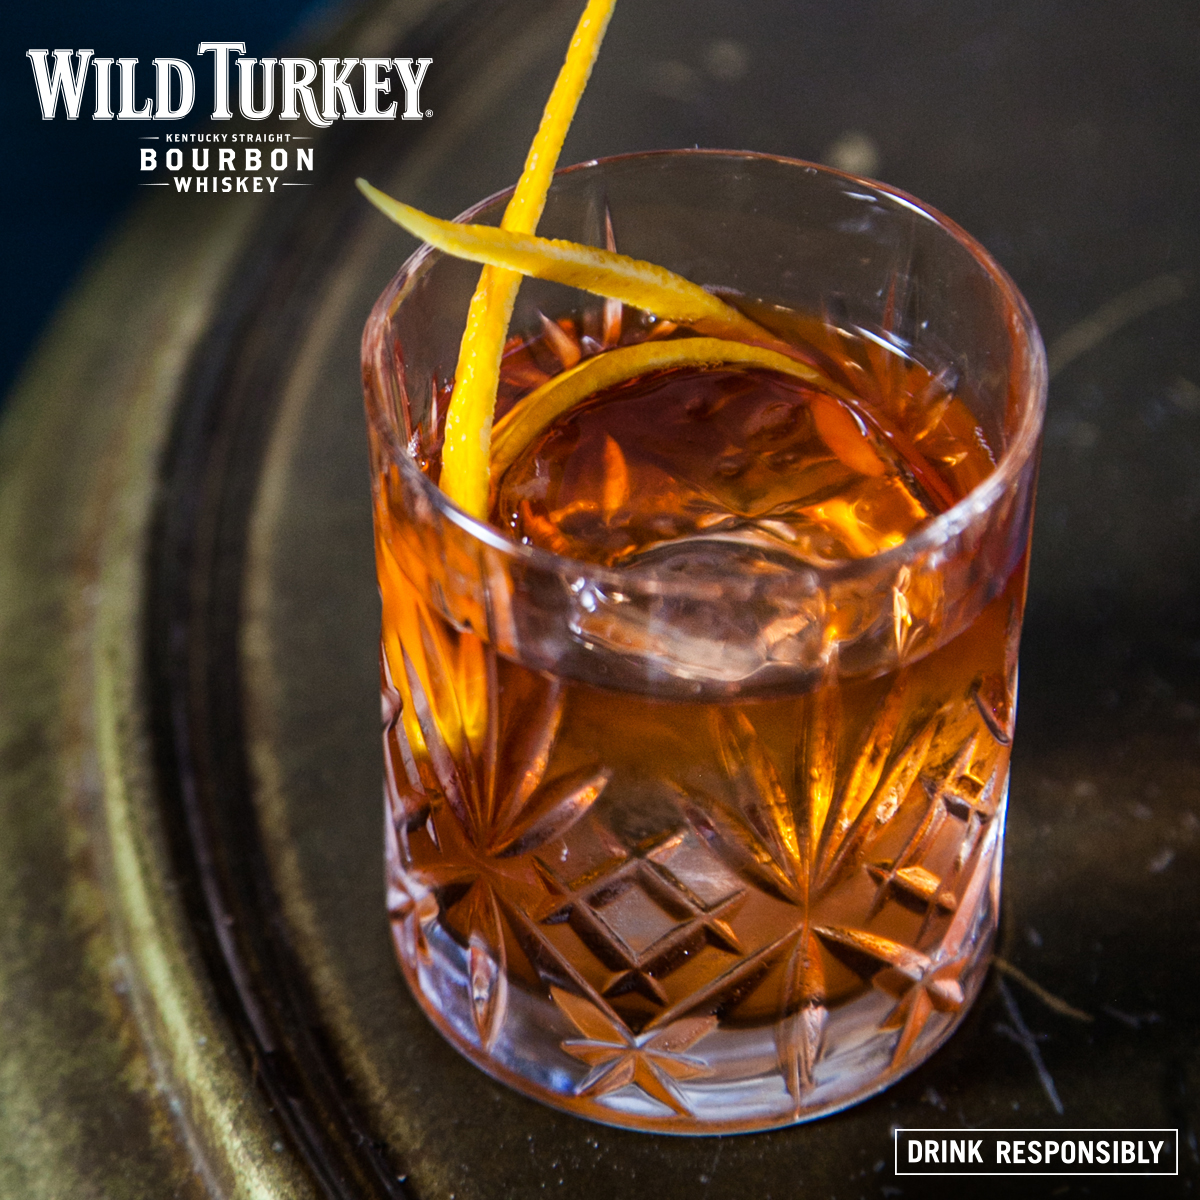 SHARE… - …some of our wild cocktails around the fire pits with your crew while chowing down from our special fire inspired menu